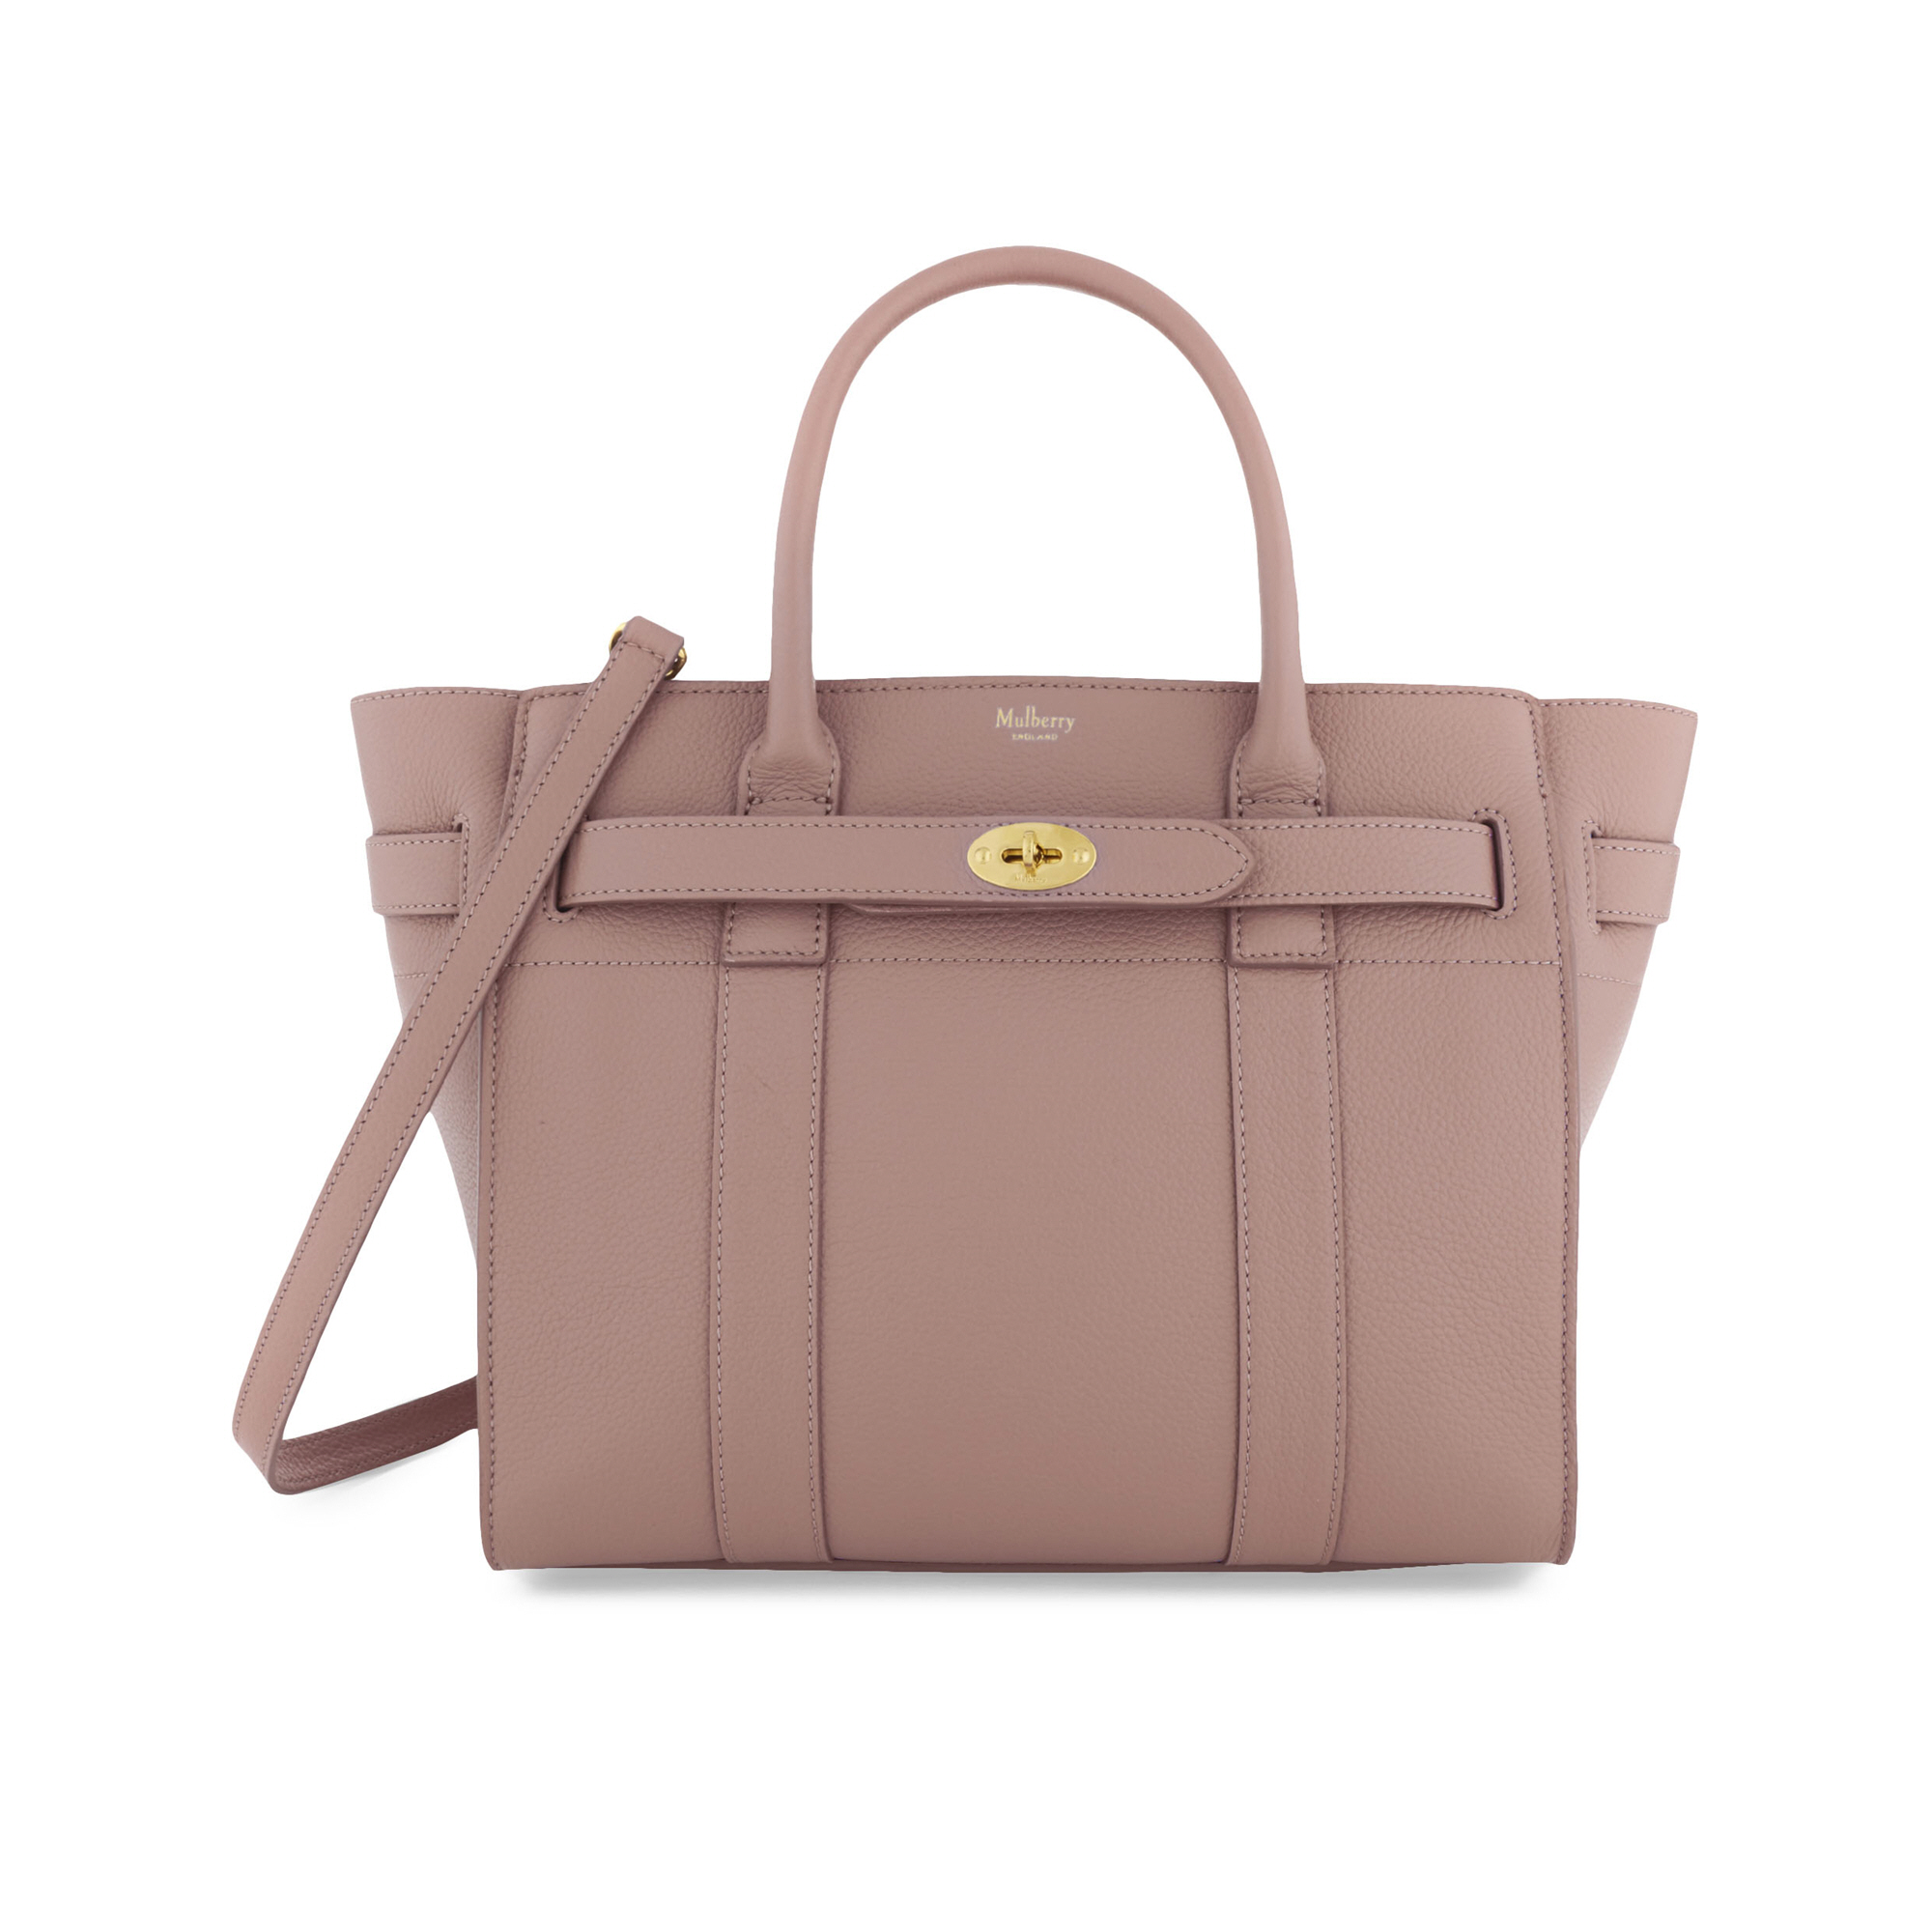 b27b3b11fd1c SELFRIDGES Mulberry Bayswater grained leather tote bag £995